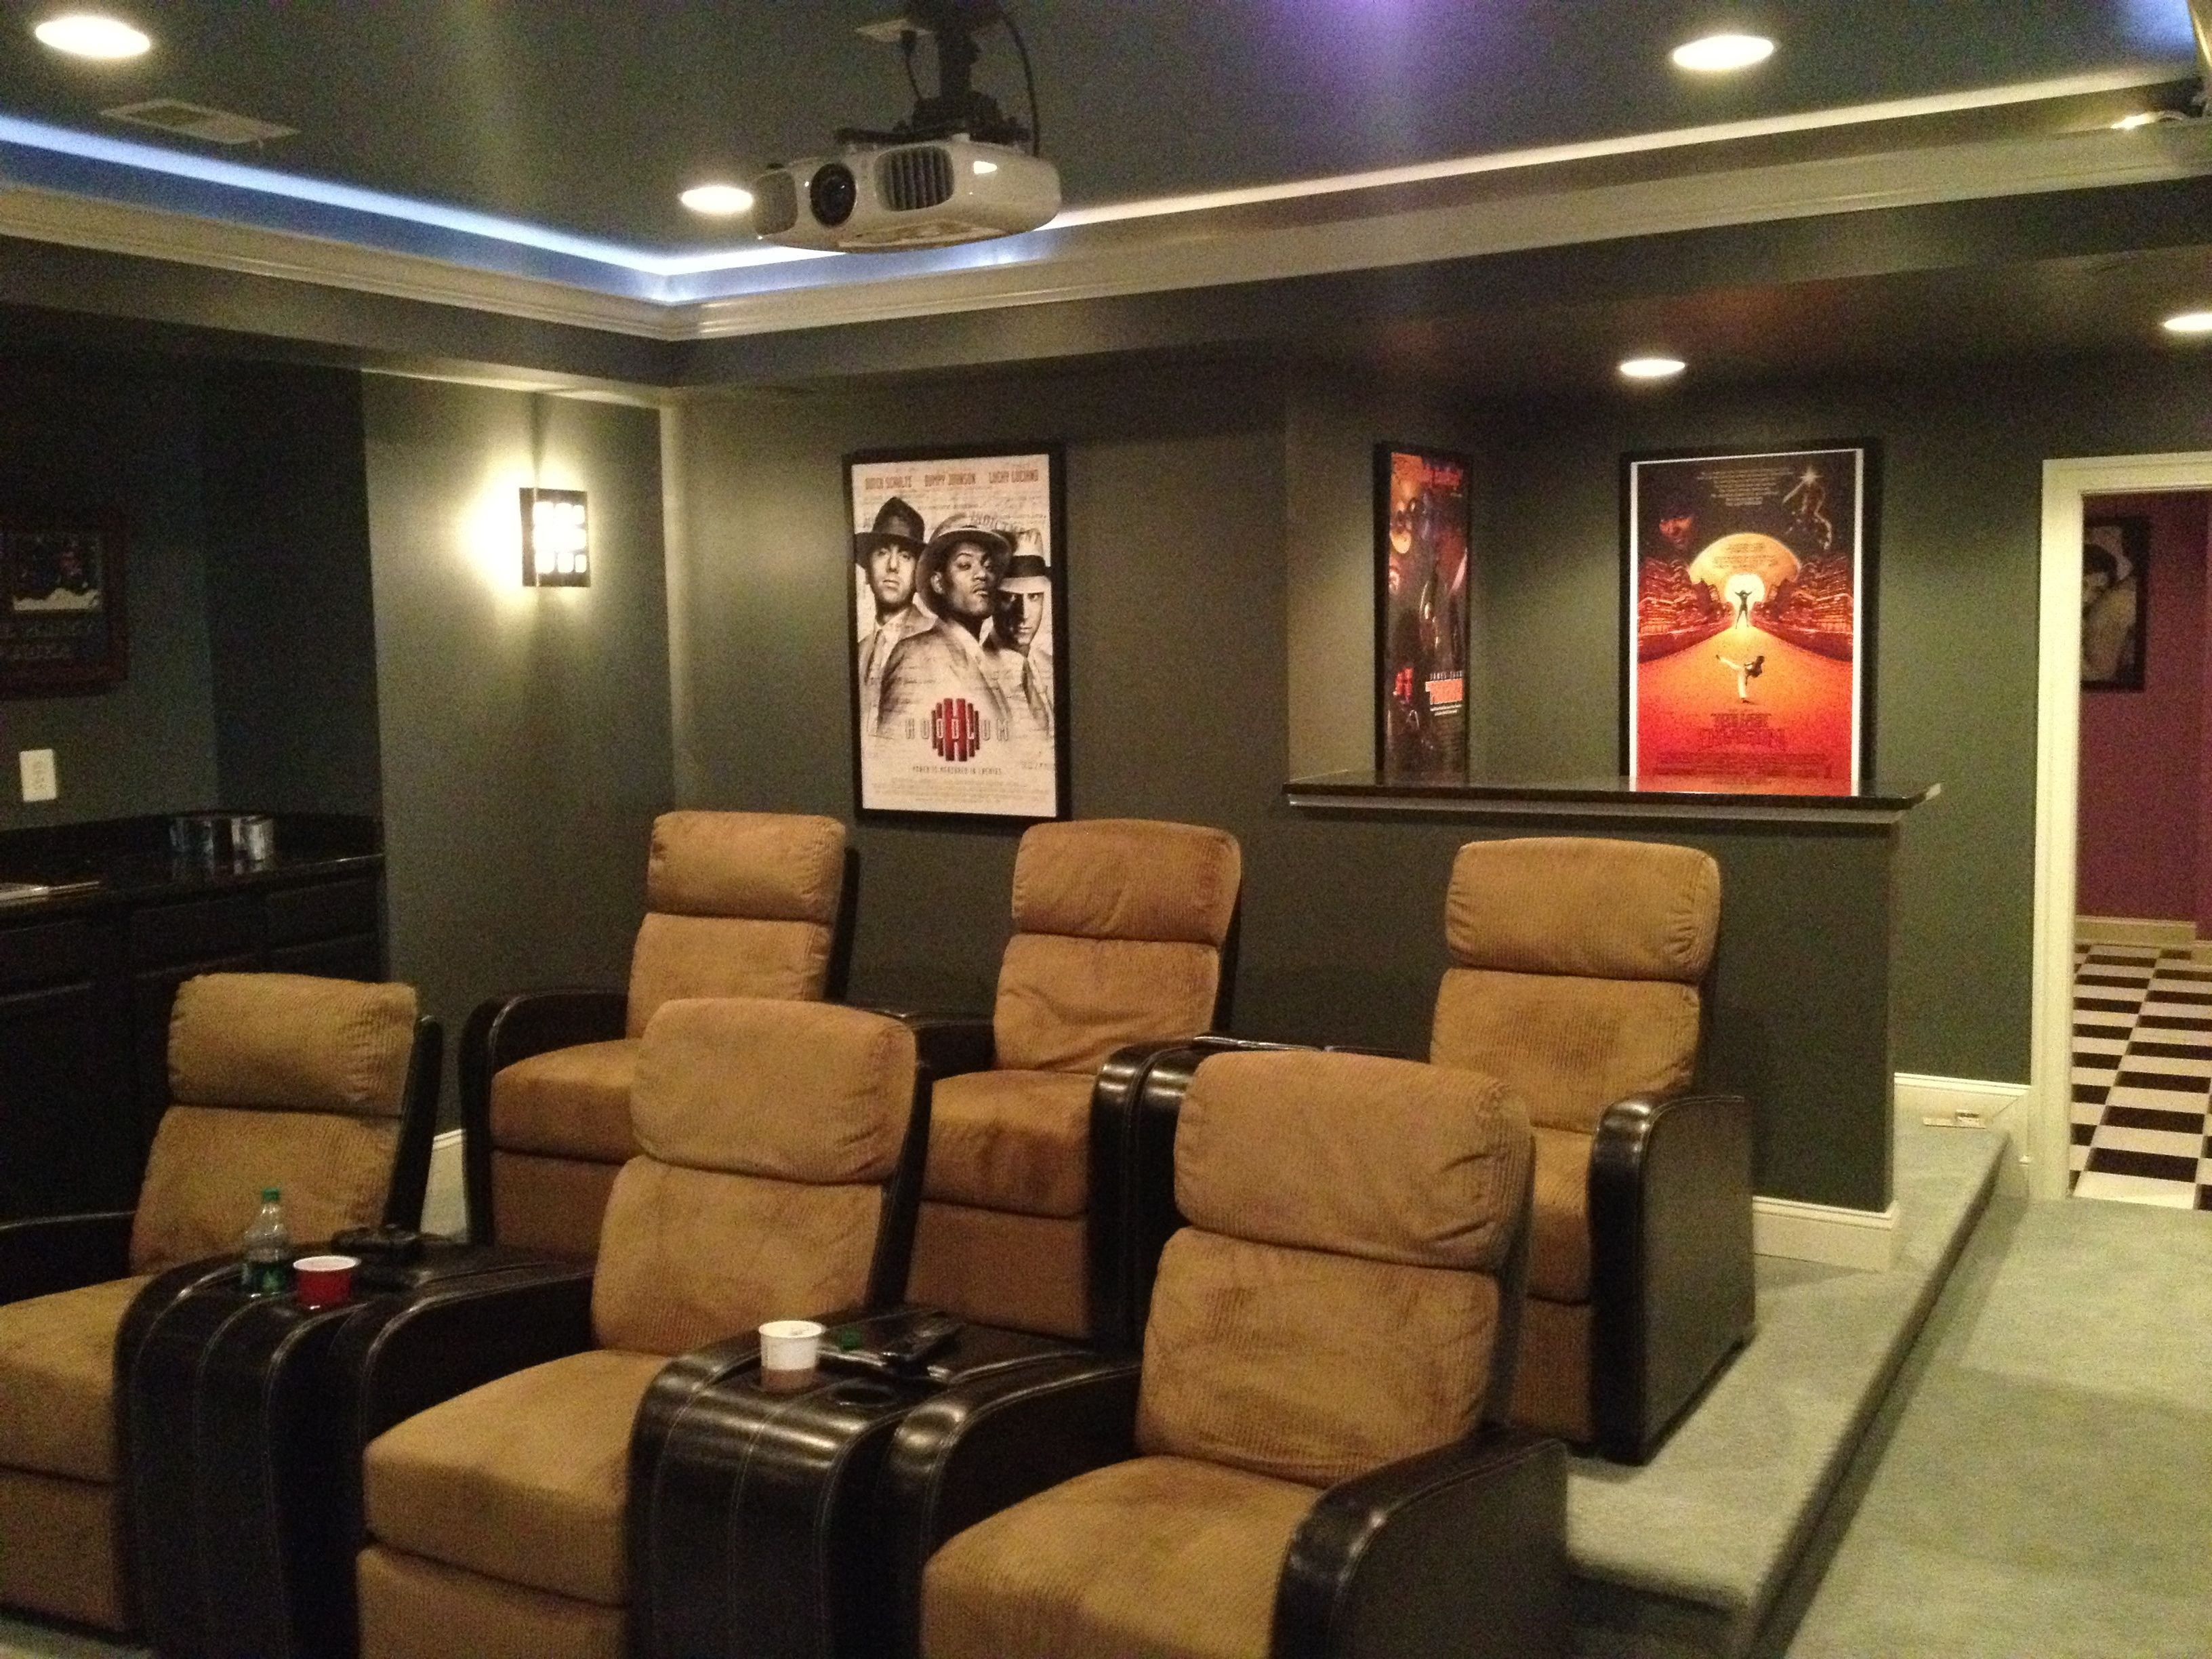 basement movie theater with comfy seats